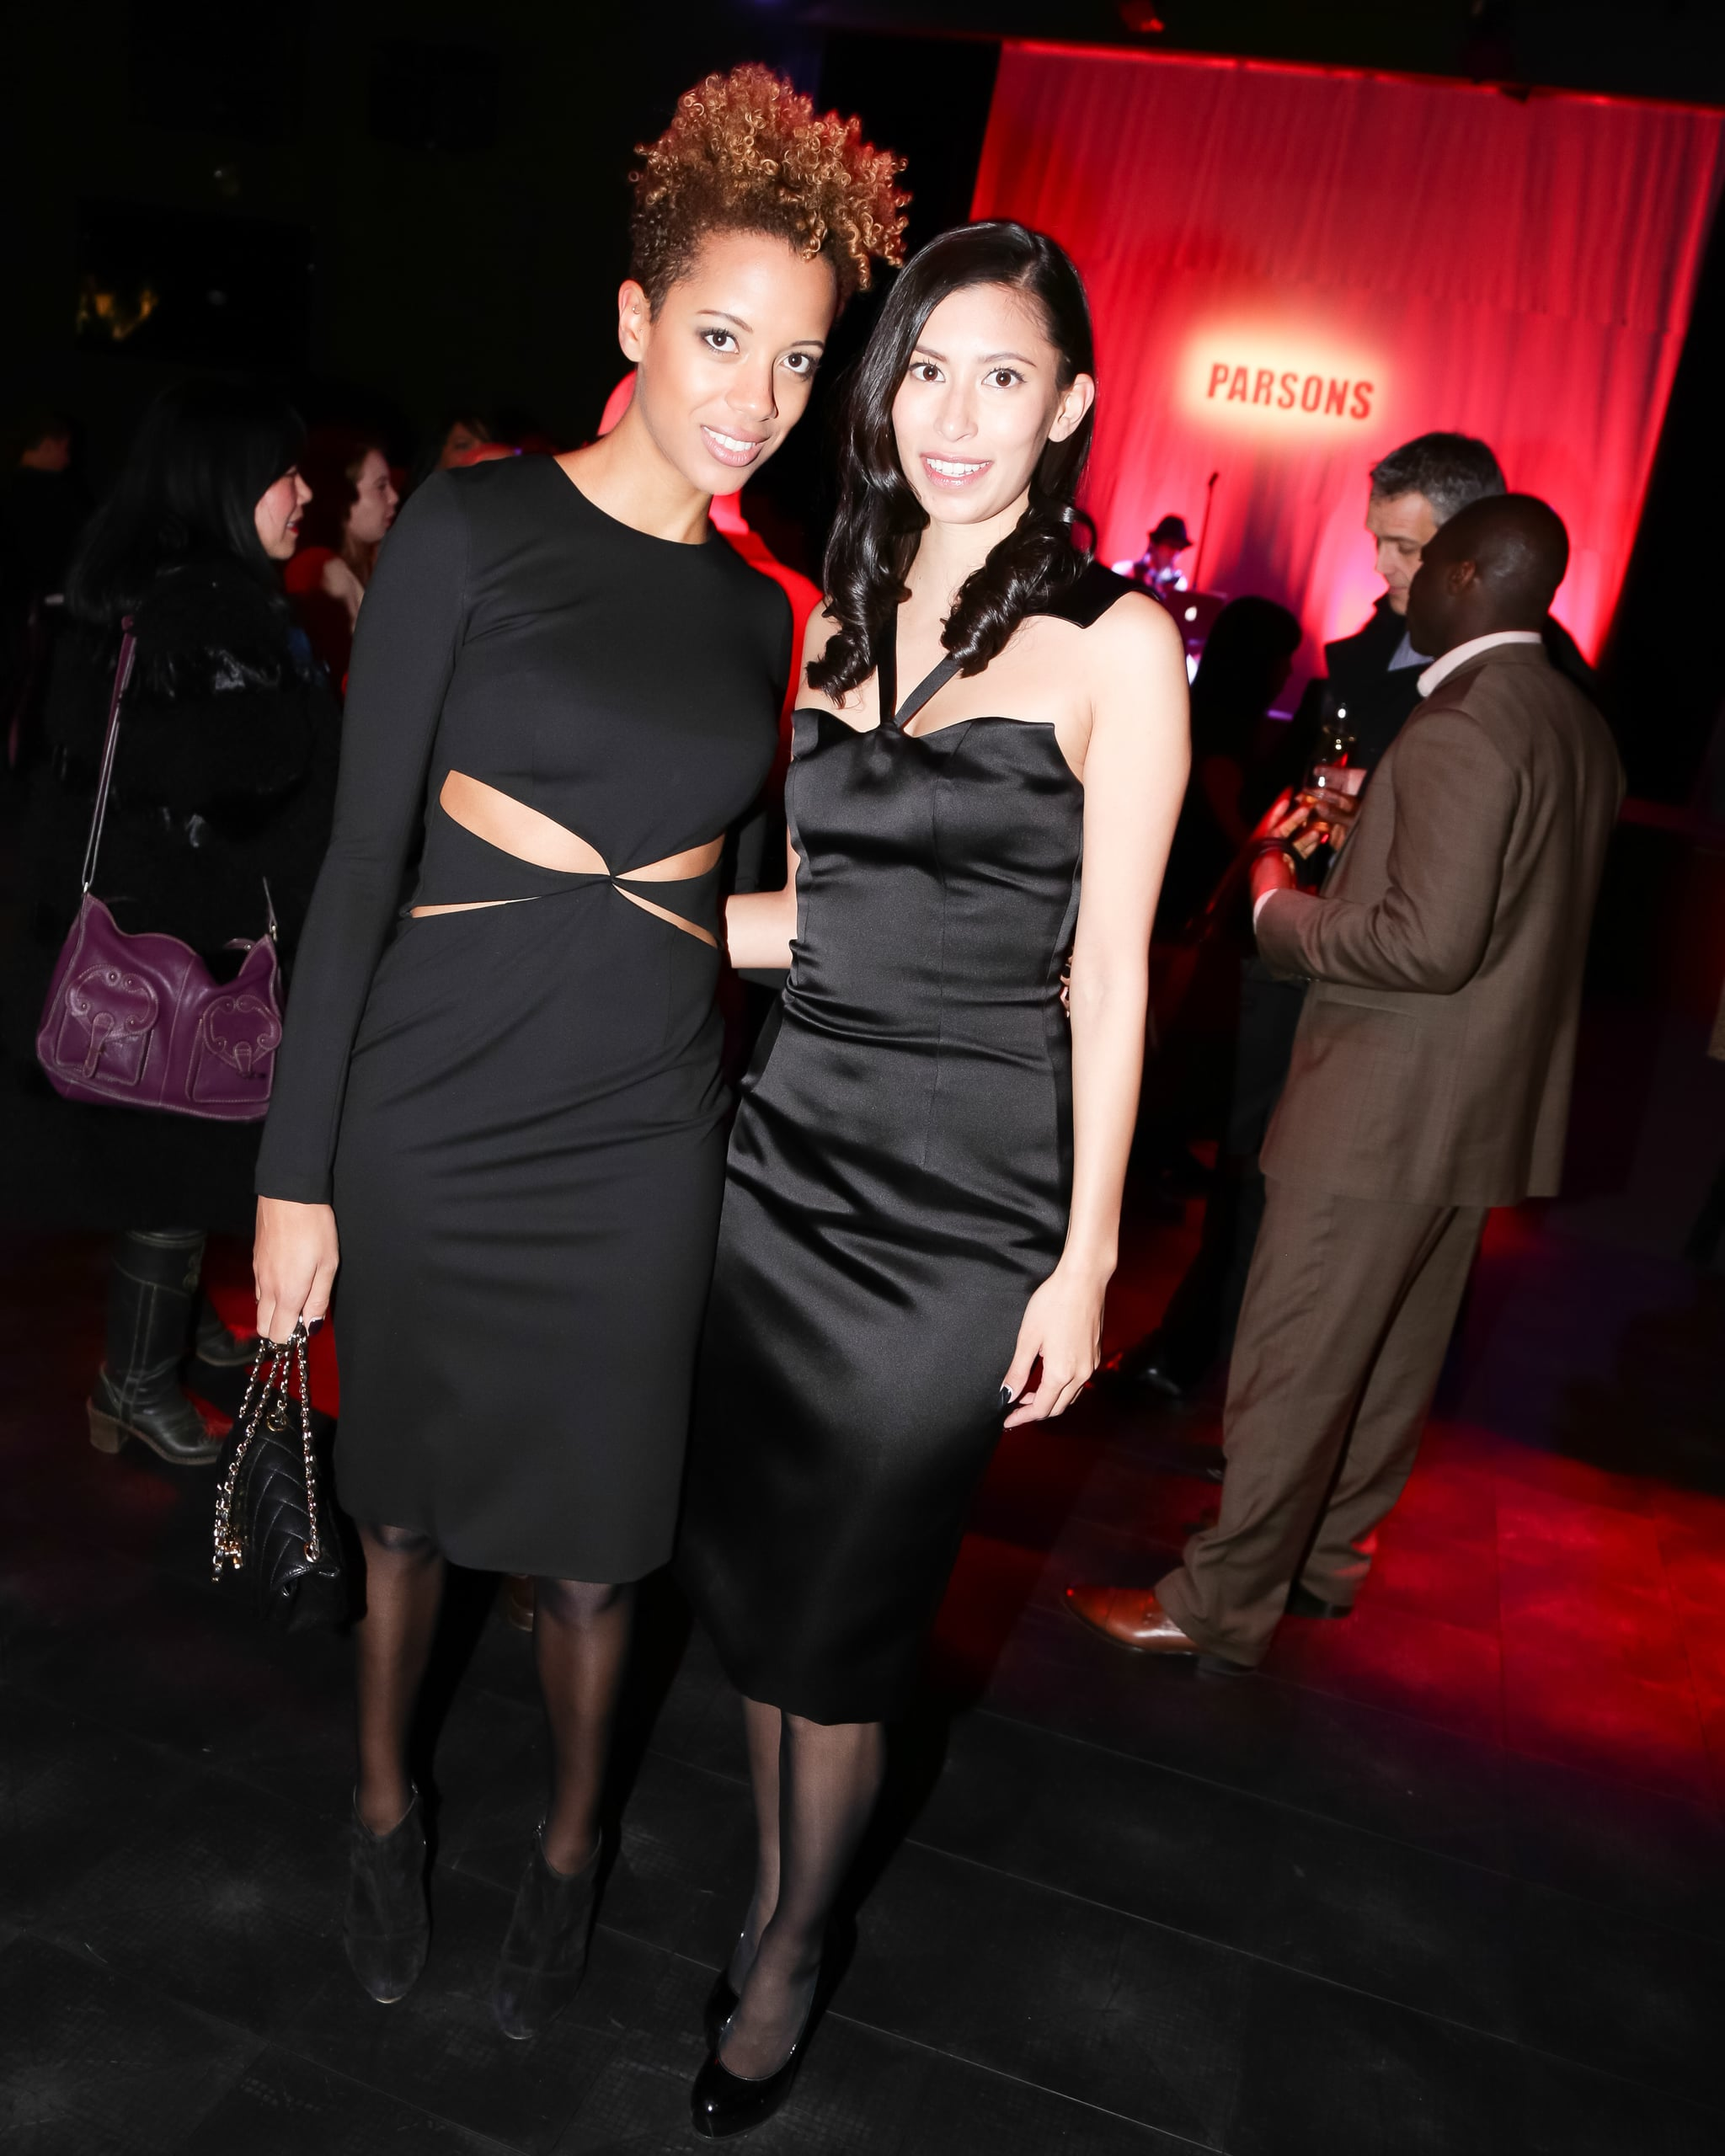 Carly Cushnie and Michelle Ochs at the Parsons 560 Farewell Event.